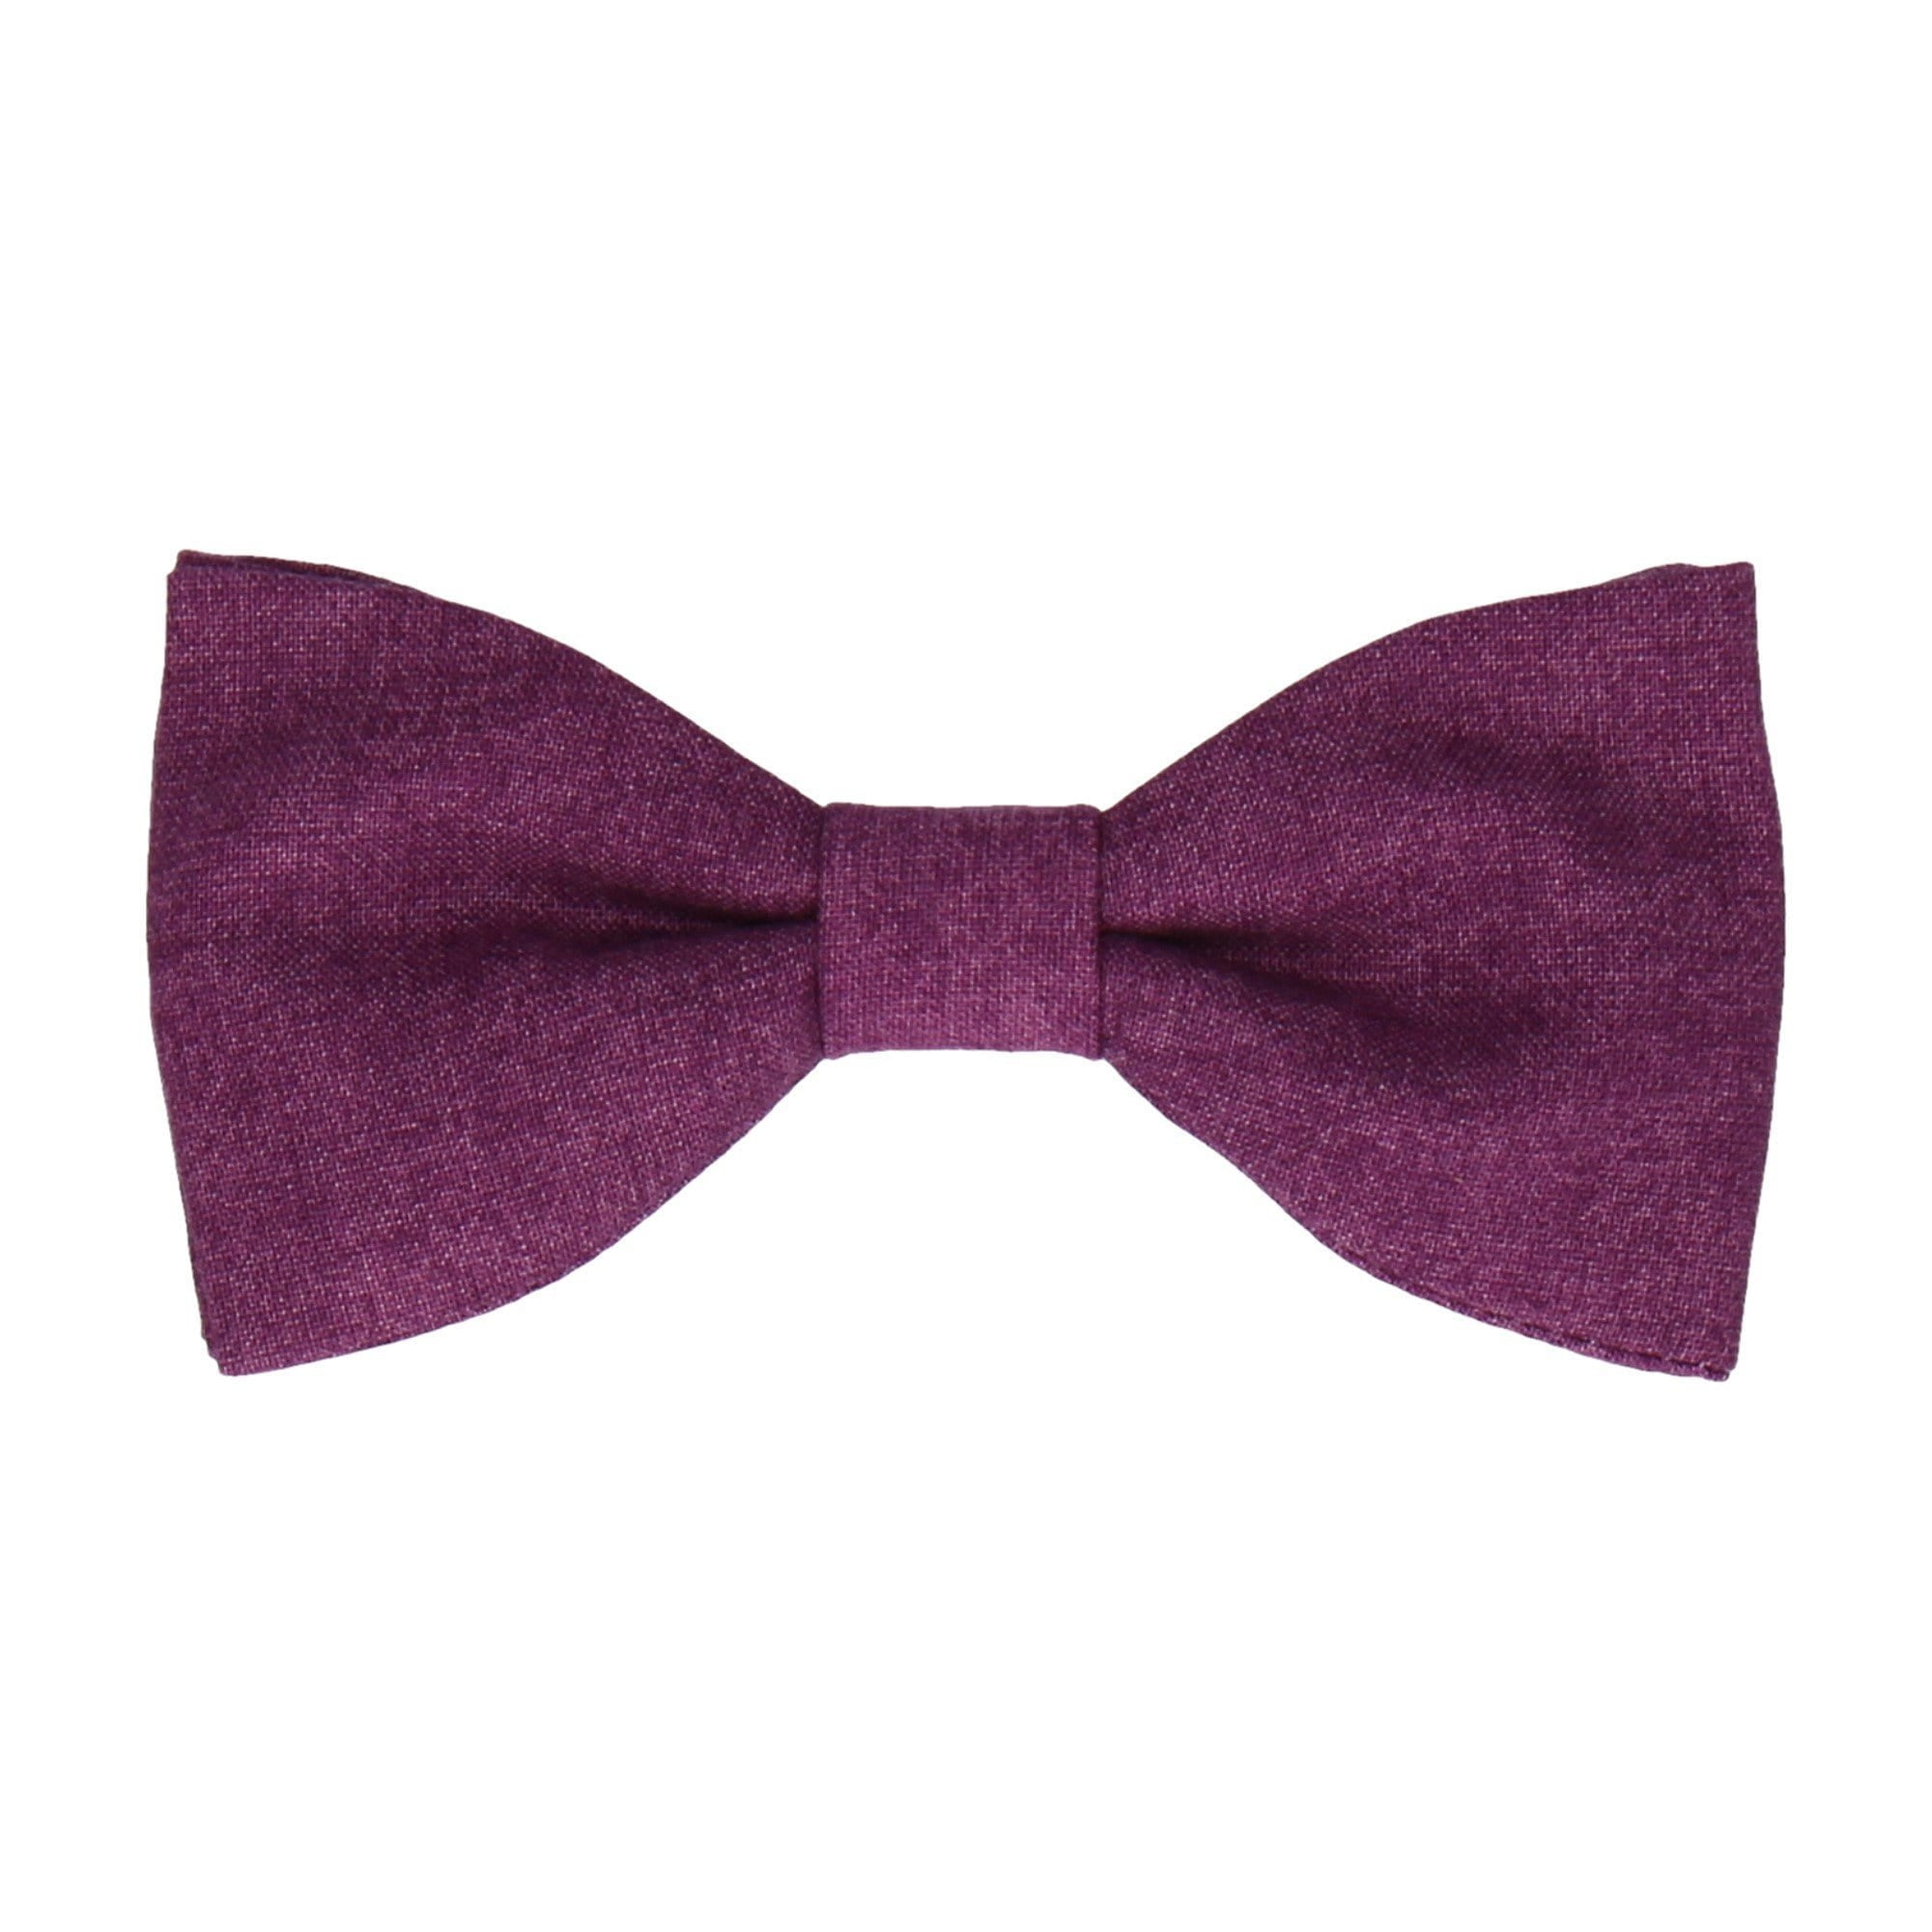 Cotton in Purple Marl Bow Tie